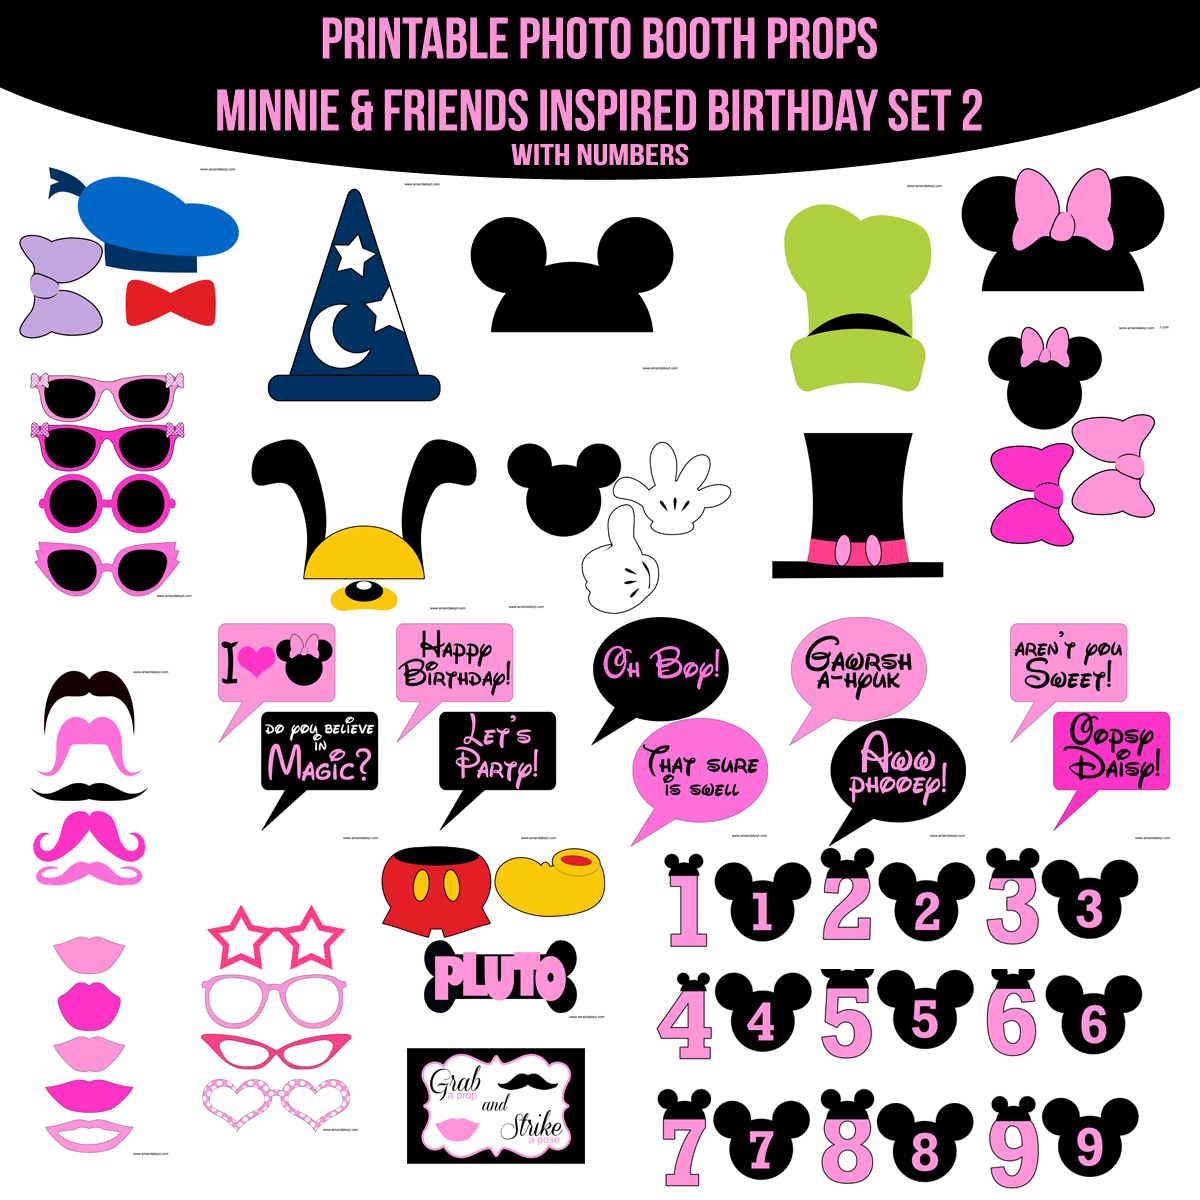 image relating to Printable Photo Booth Props Birthday identified as Fast Obtain Minnie Mouse Mates Birthday Encouraged Printable Photograph Booth Prop Fastened 2 Amanda Keyt Printable Models